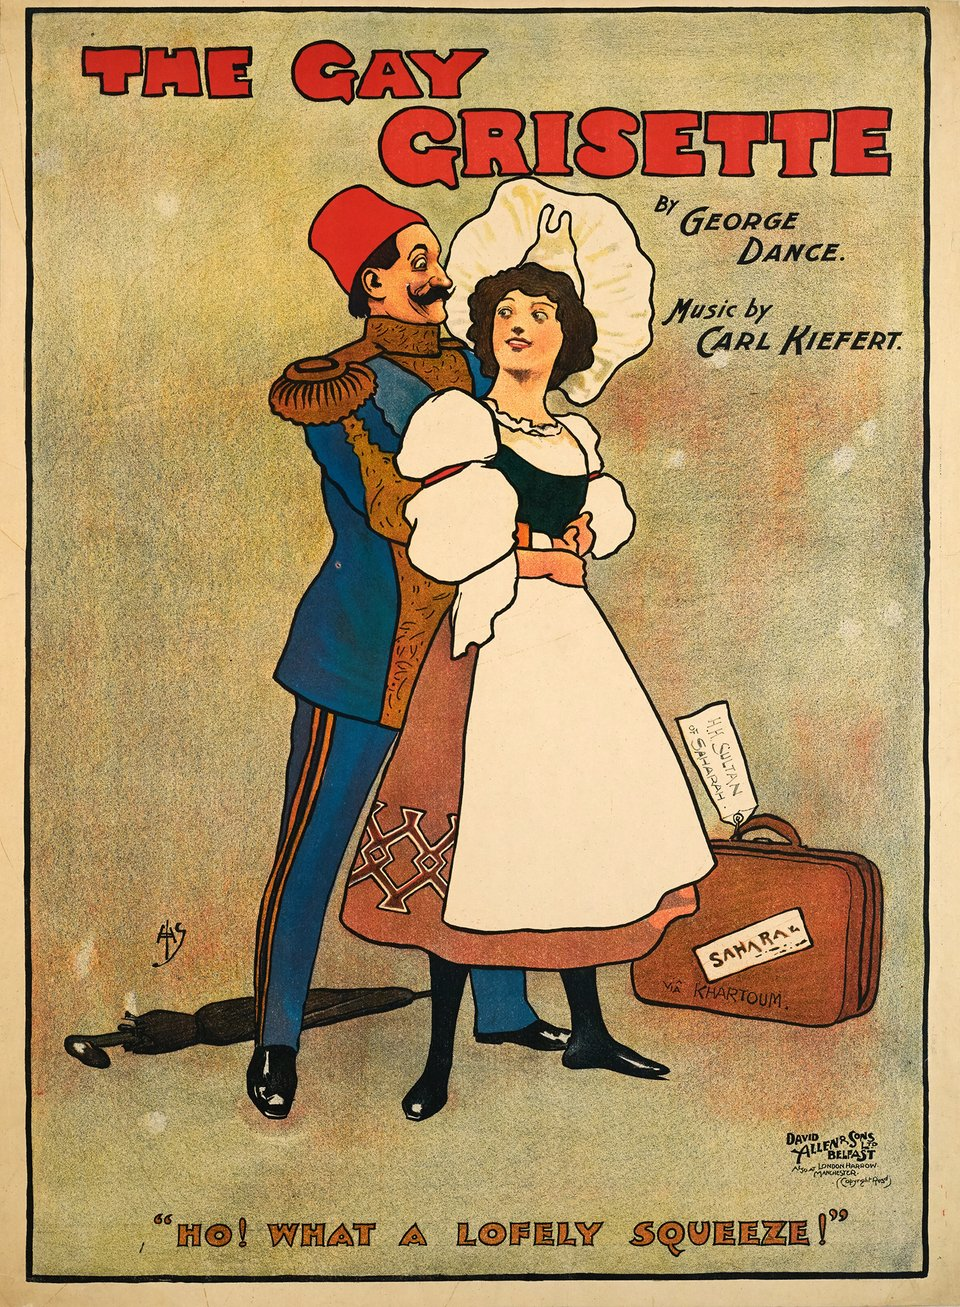 The Gay Grisette – Vintage poster – John HASSAL – 1895